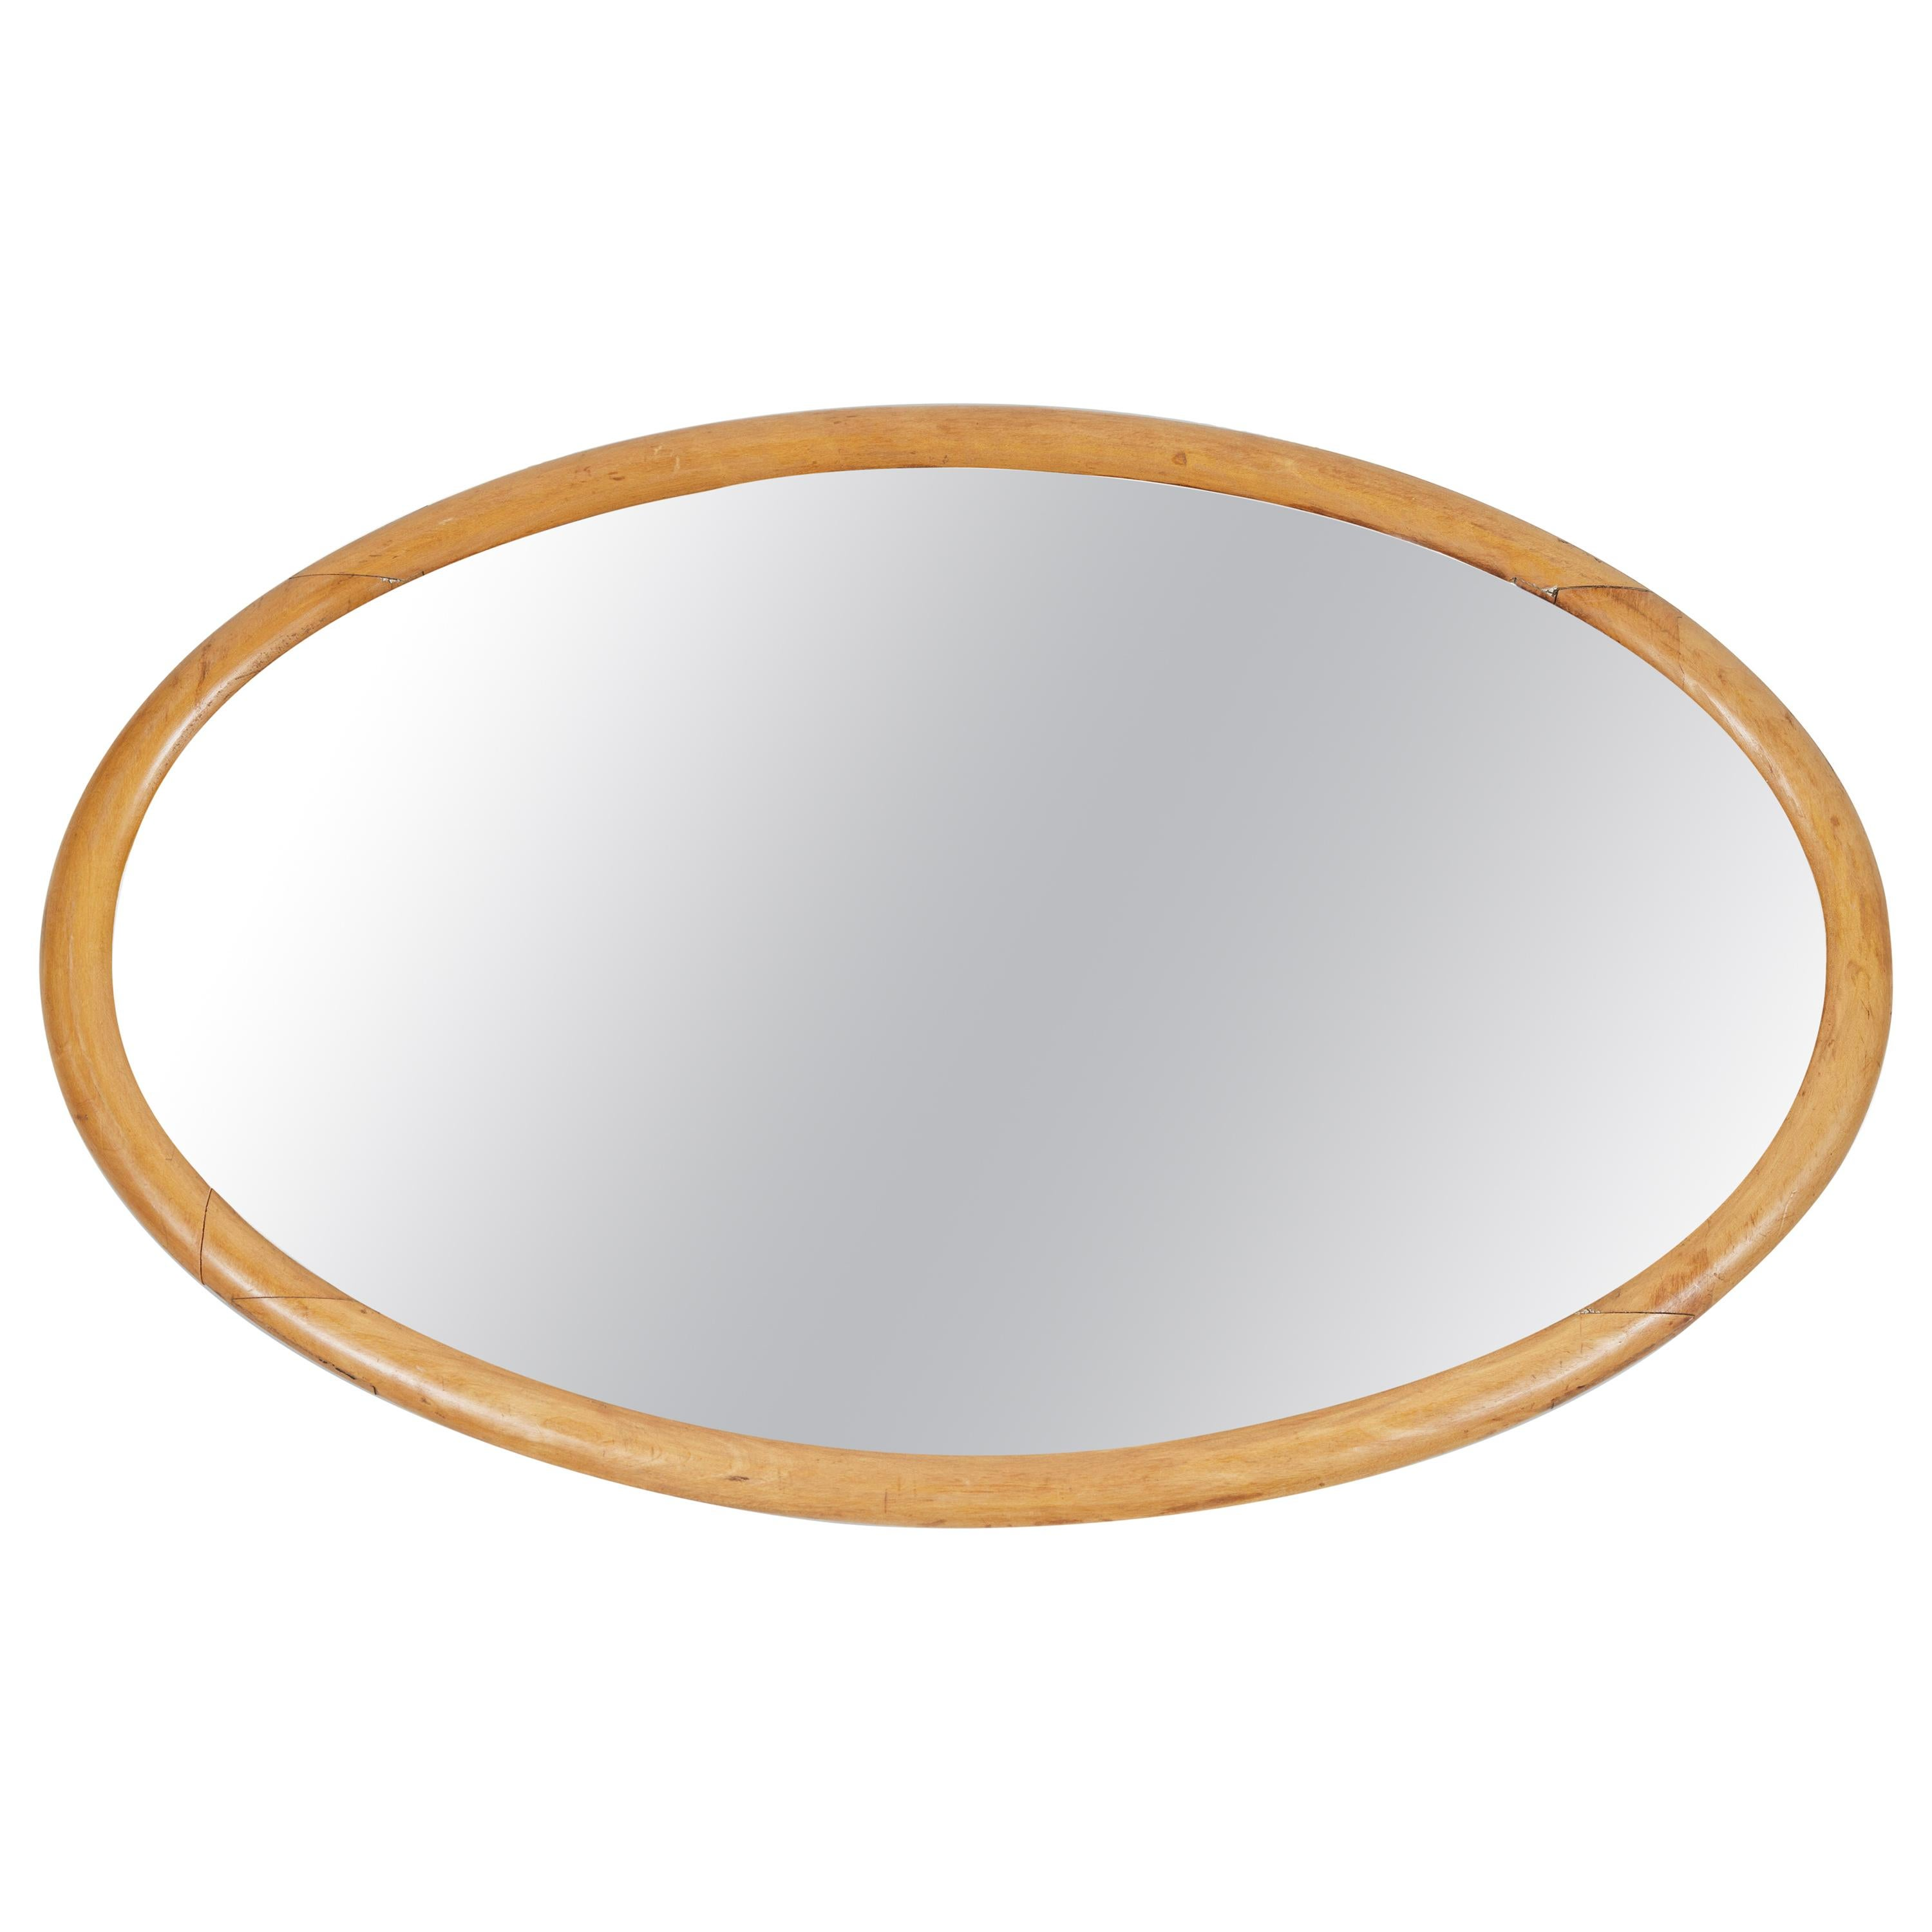 Antique Oval Wood Frame Mirror